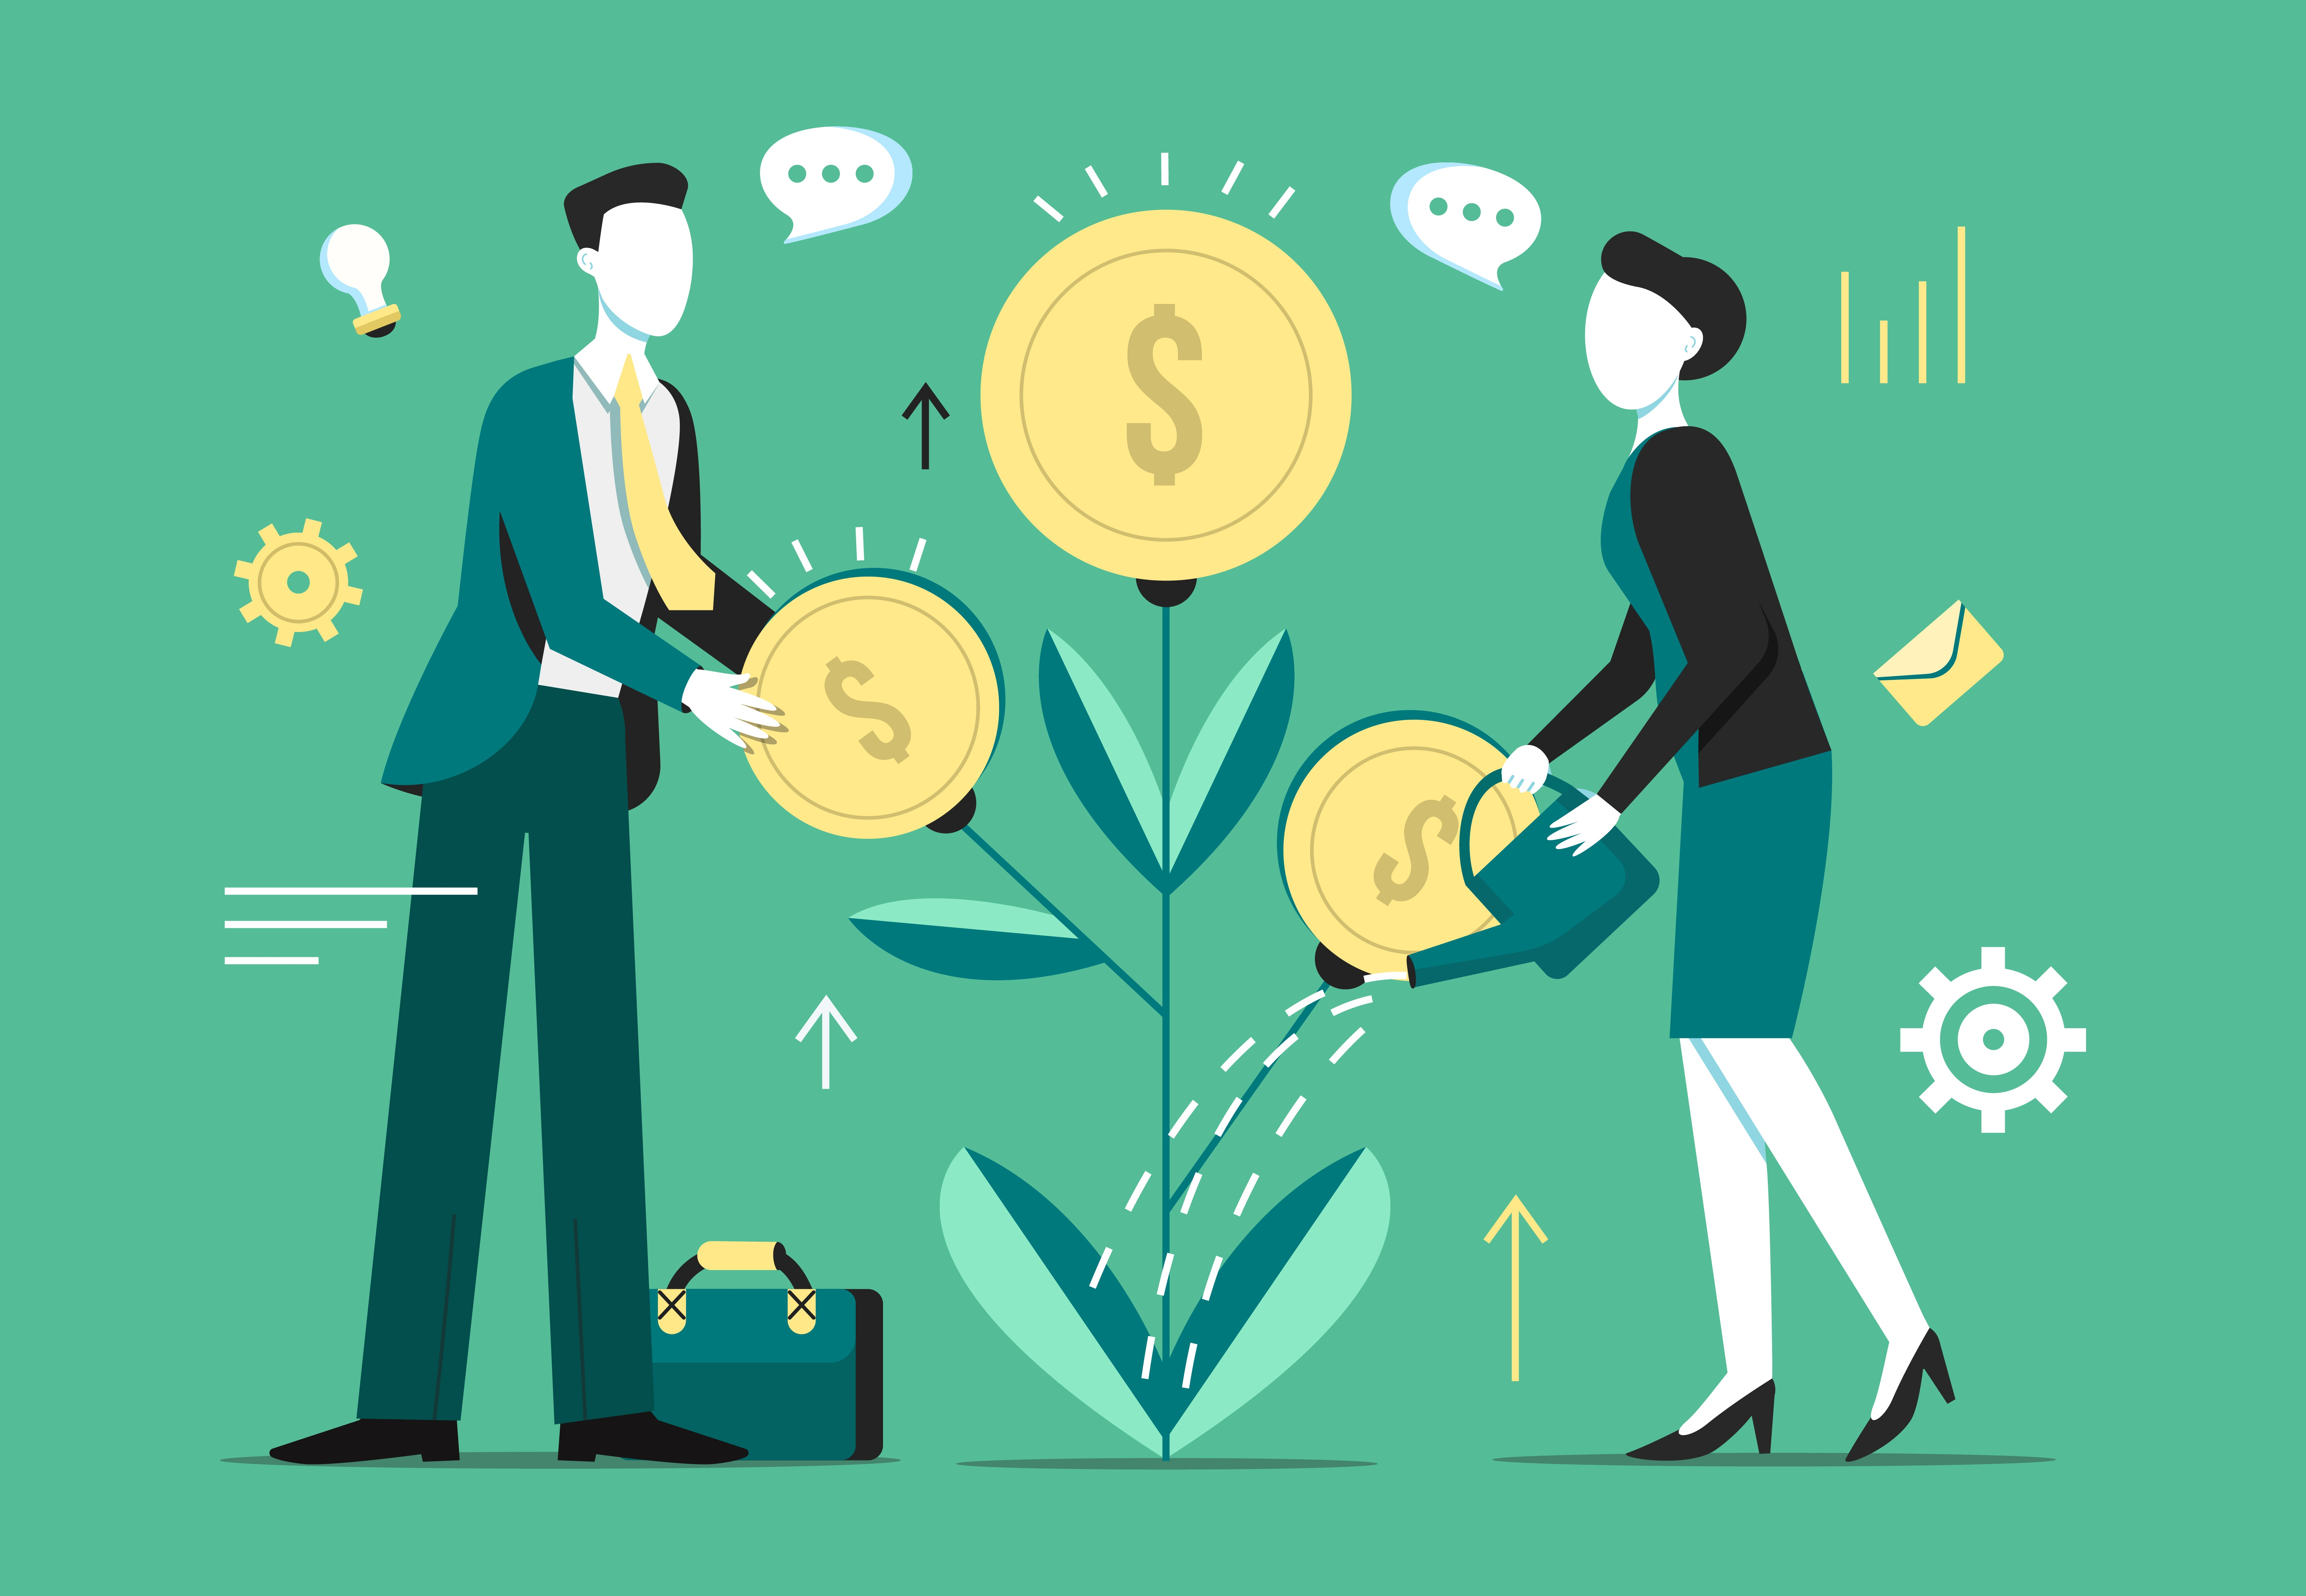 Illustration of business people nurturing an investment tree